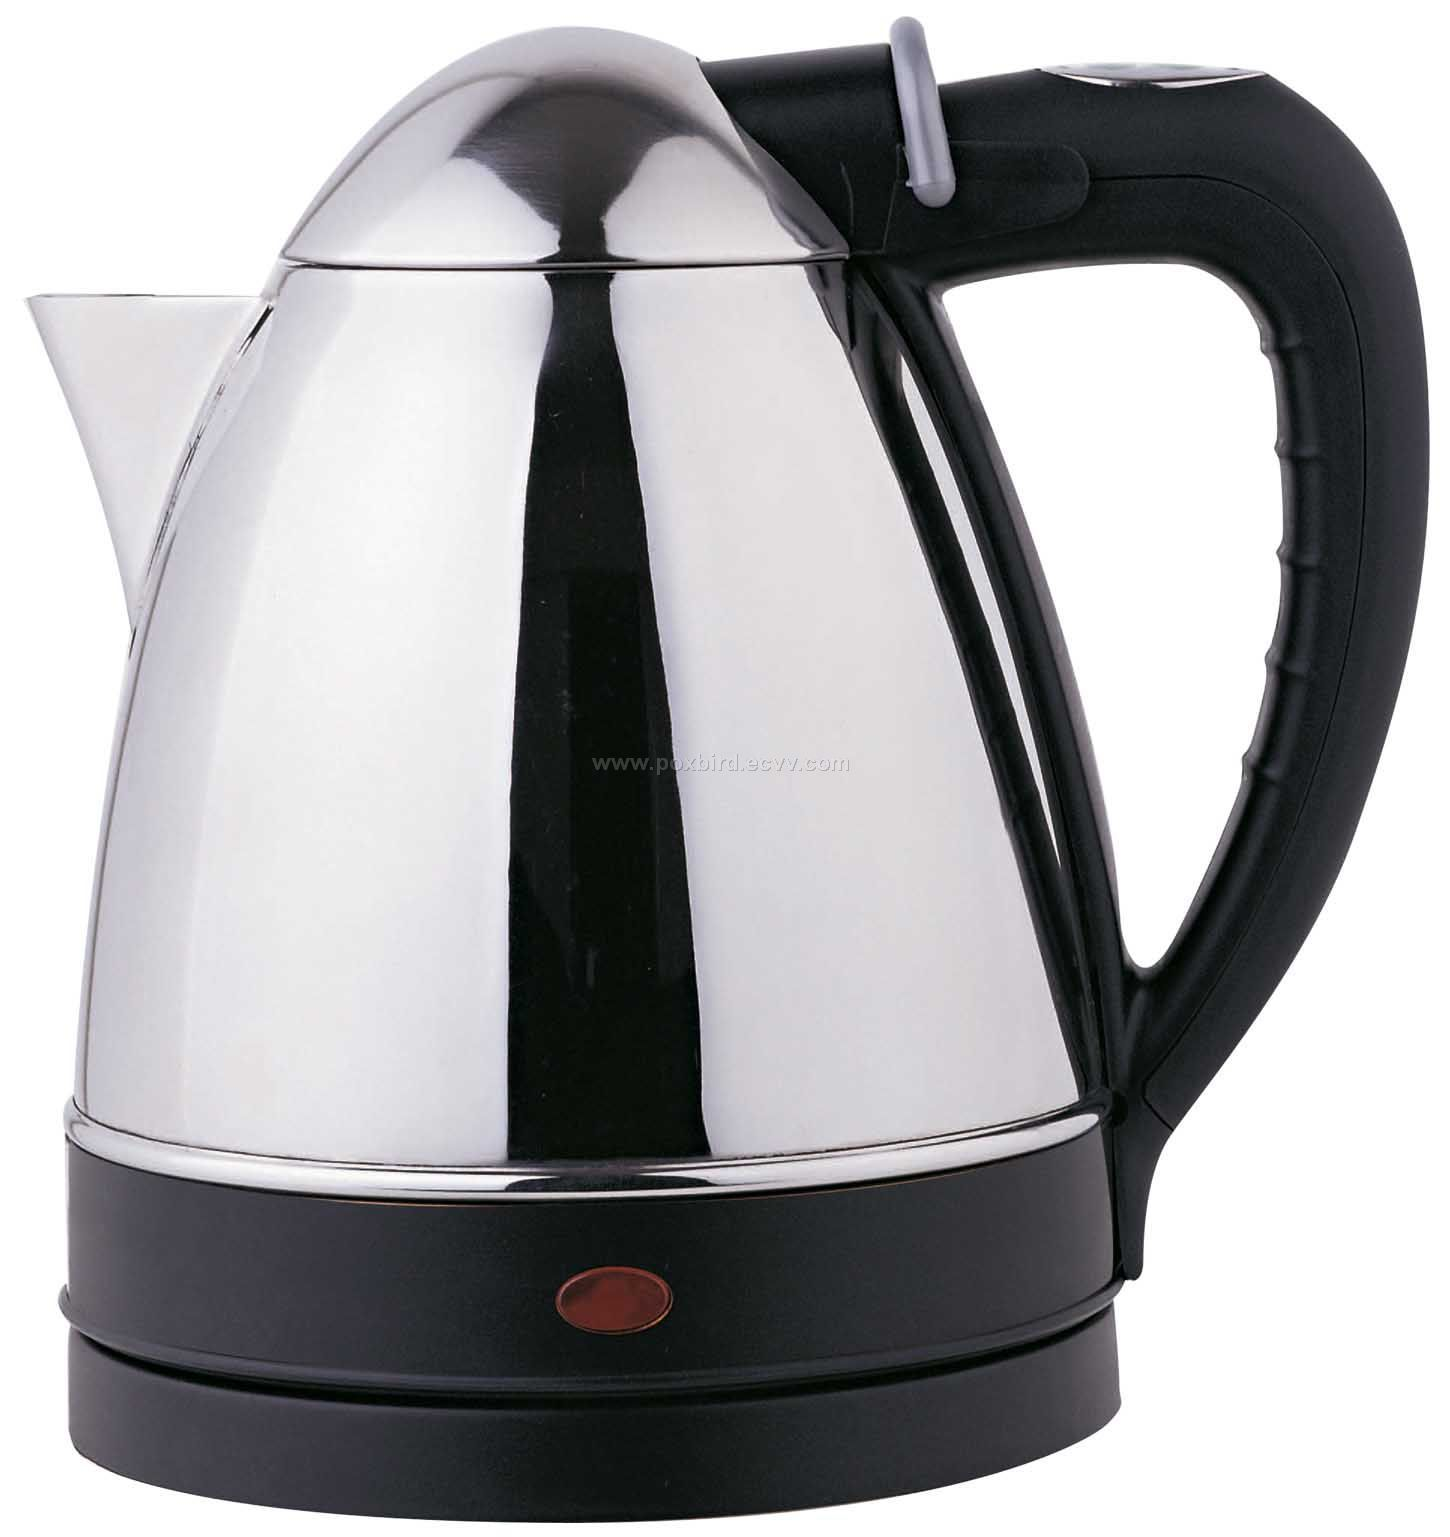 Kettle Hk Electric D184t ~ Me when i try to cook funny